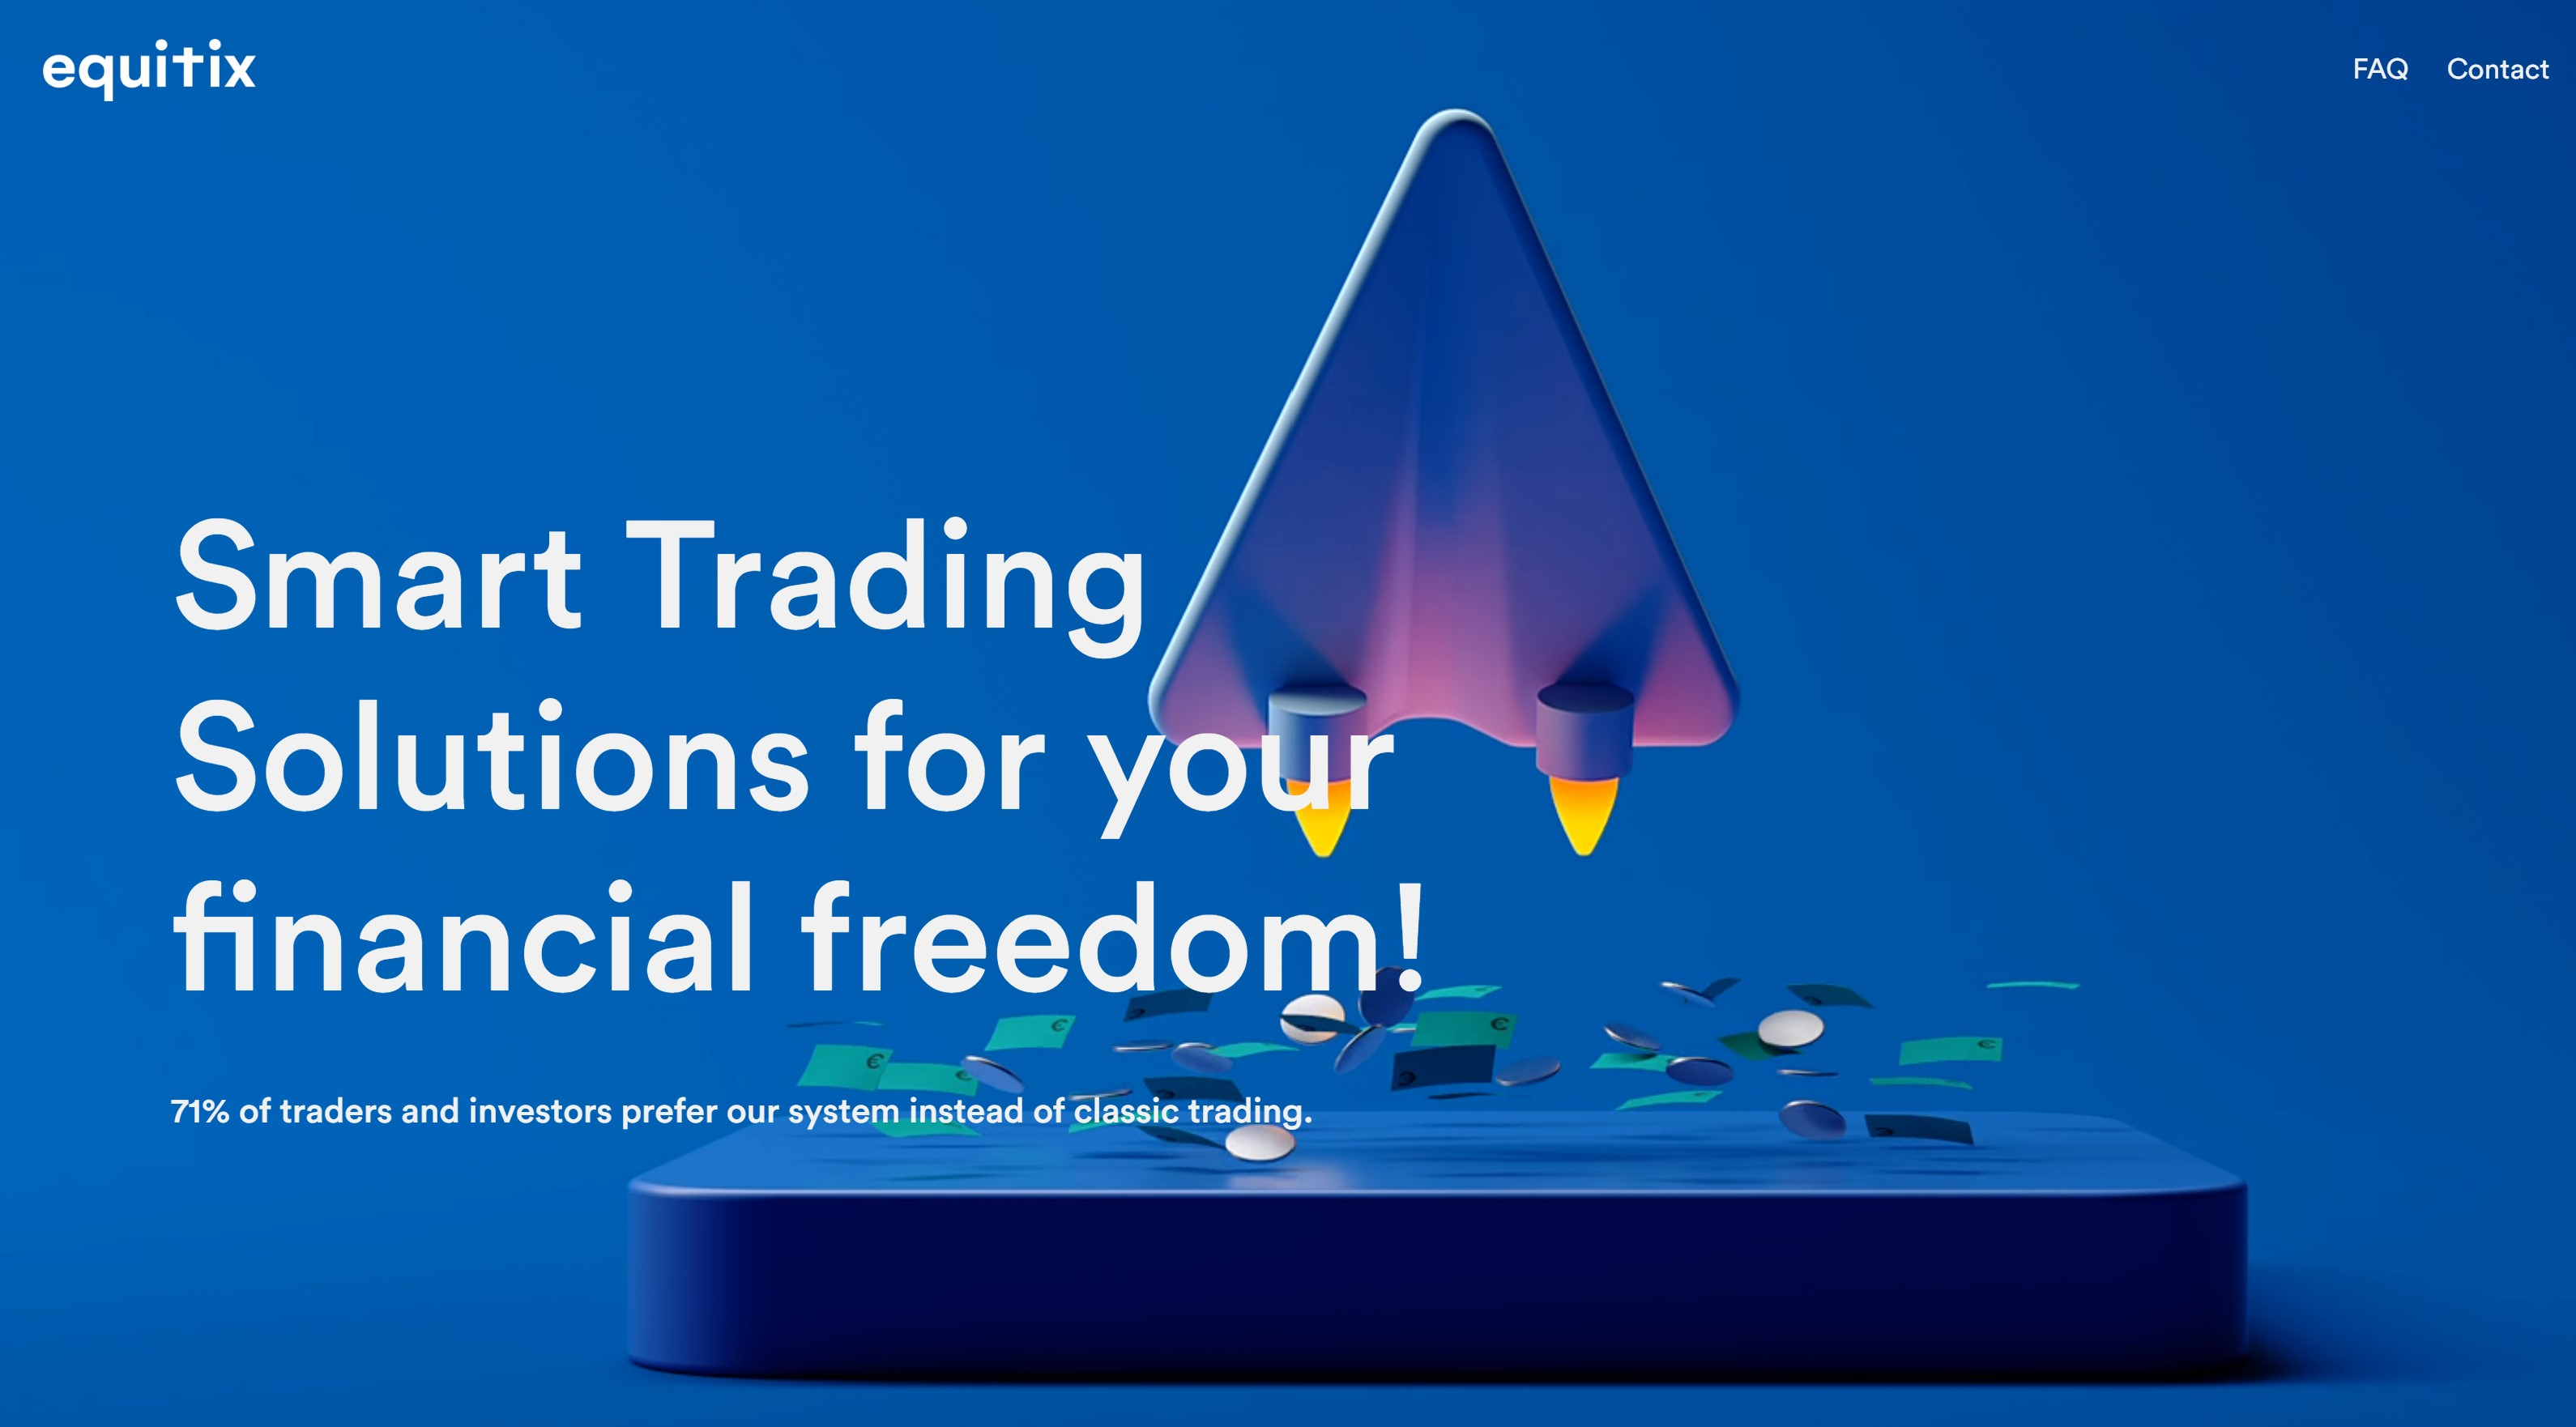 Earn $100 with Equitix referral system